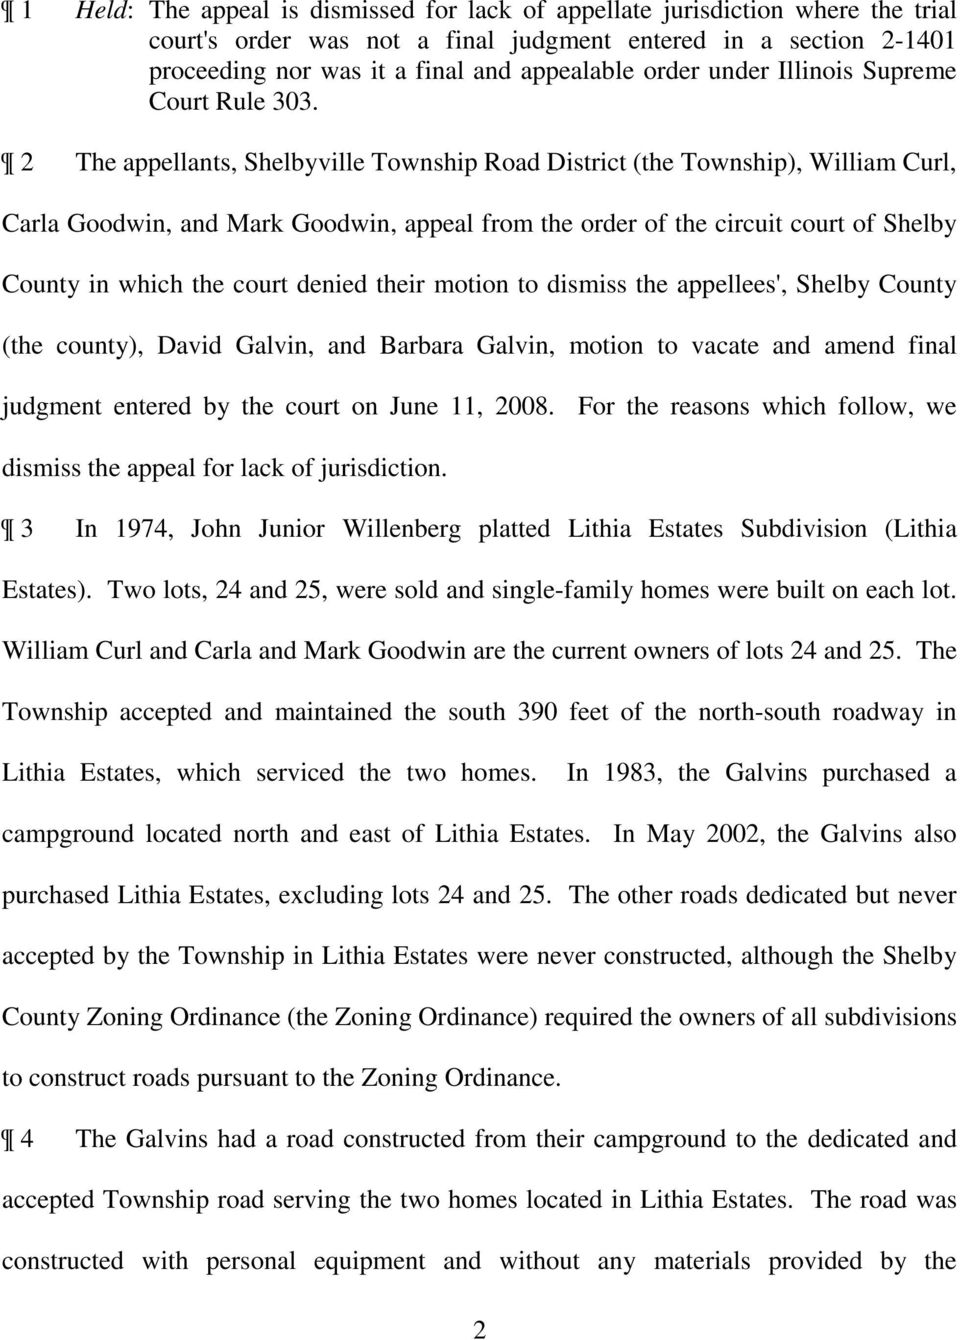 2 The appellants, Shelbyville Township Road District (the Township, William Curl, Carla Goodwin, and Mark Goodwin, appeal from the order of the circuit court of Shelby County in which the court